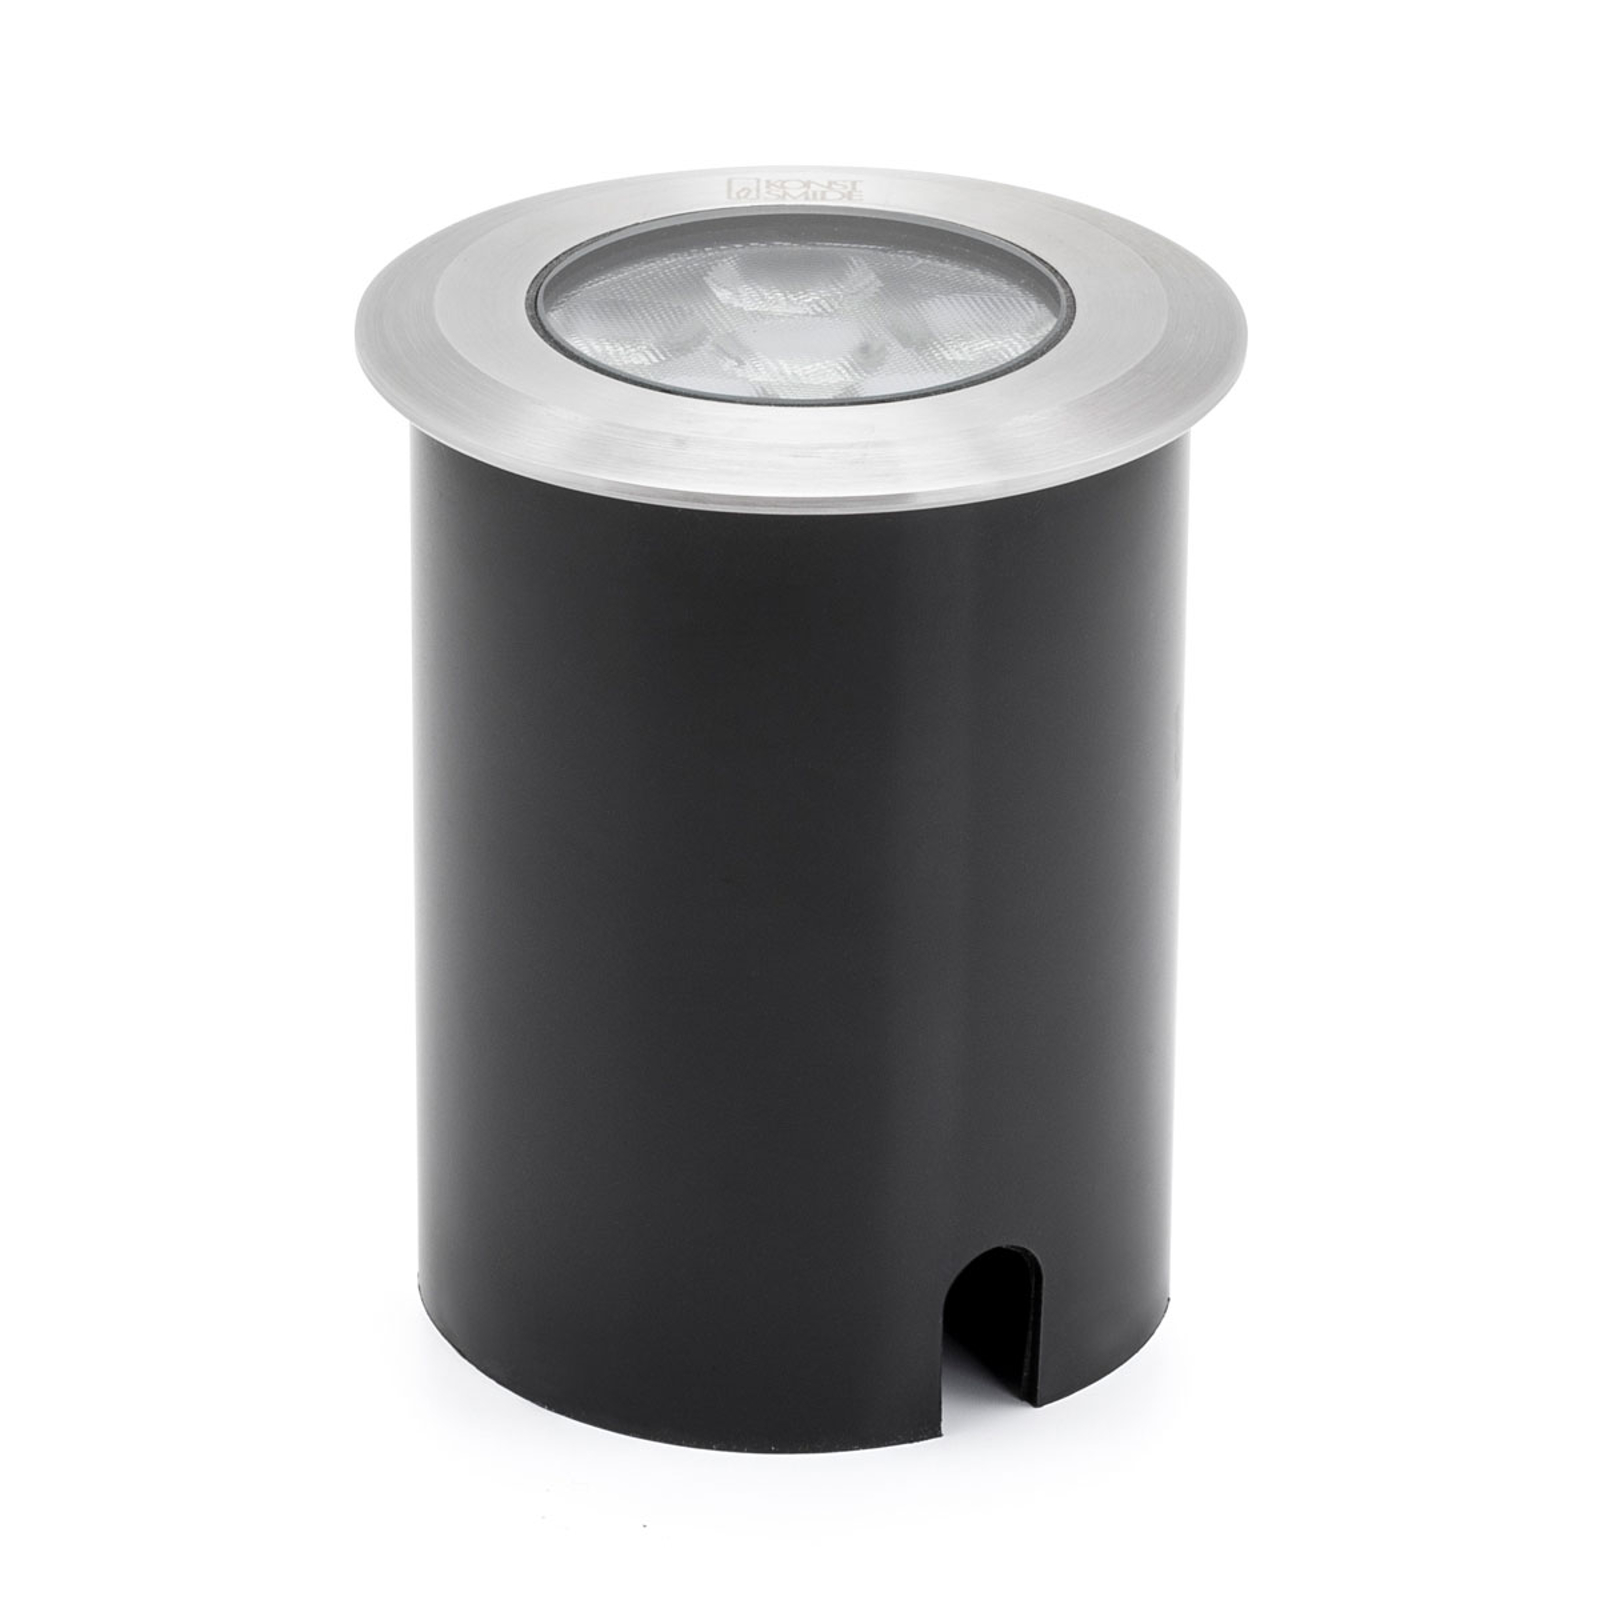 Grondspot inbouwlamp High Power LED, Ø 11 cm